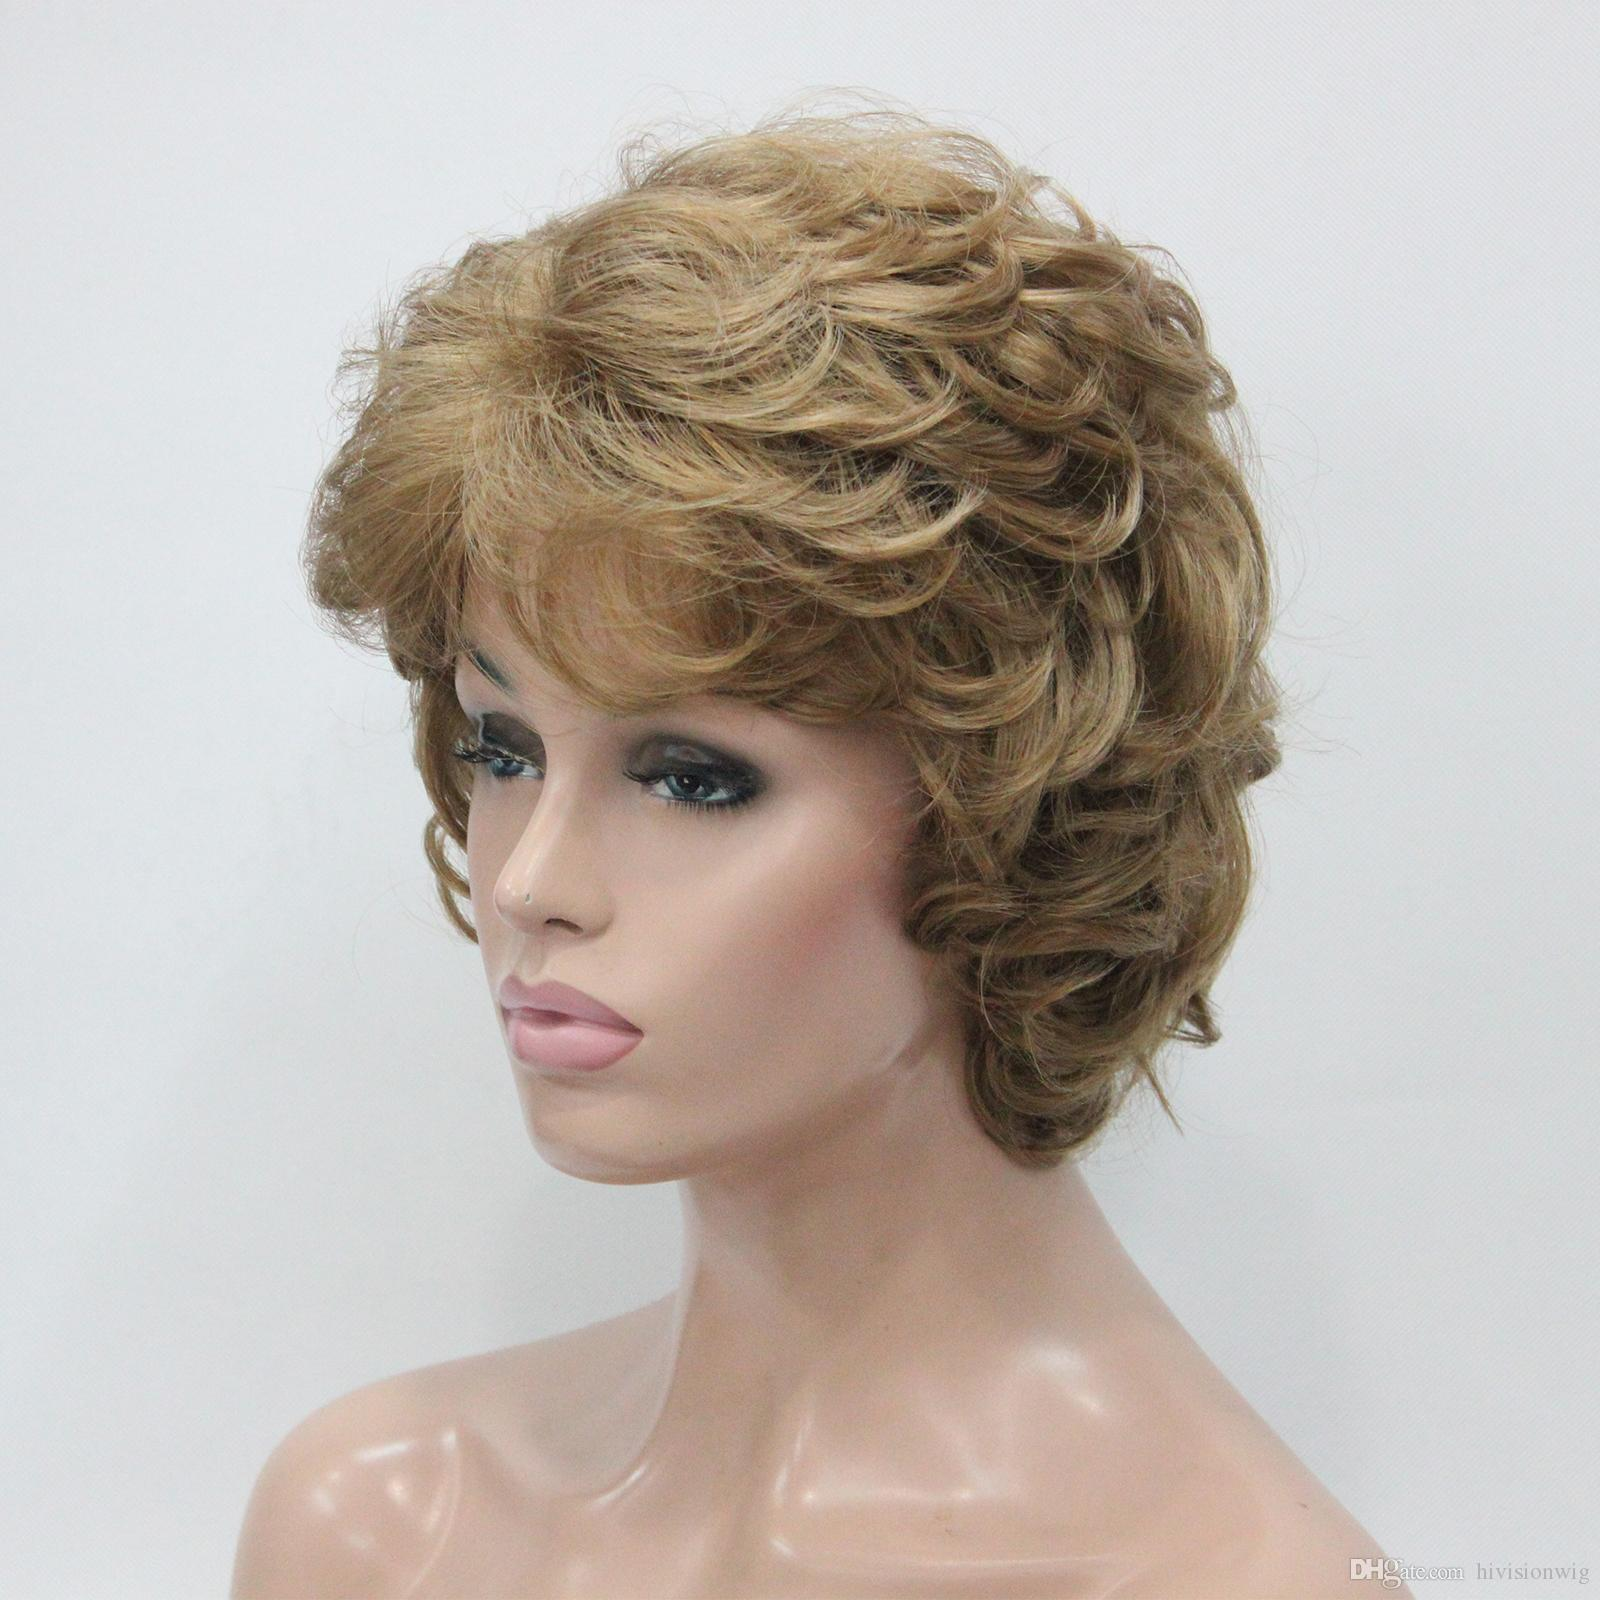 2017 New Fashion Health Fashion Light Strawberry Blonde Curly Womenu0027S Short  Wavy Wig For Every Day Wig Hair Wigs Synthetic Lace Wigs Uk Wig Online From  ...